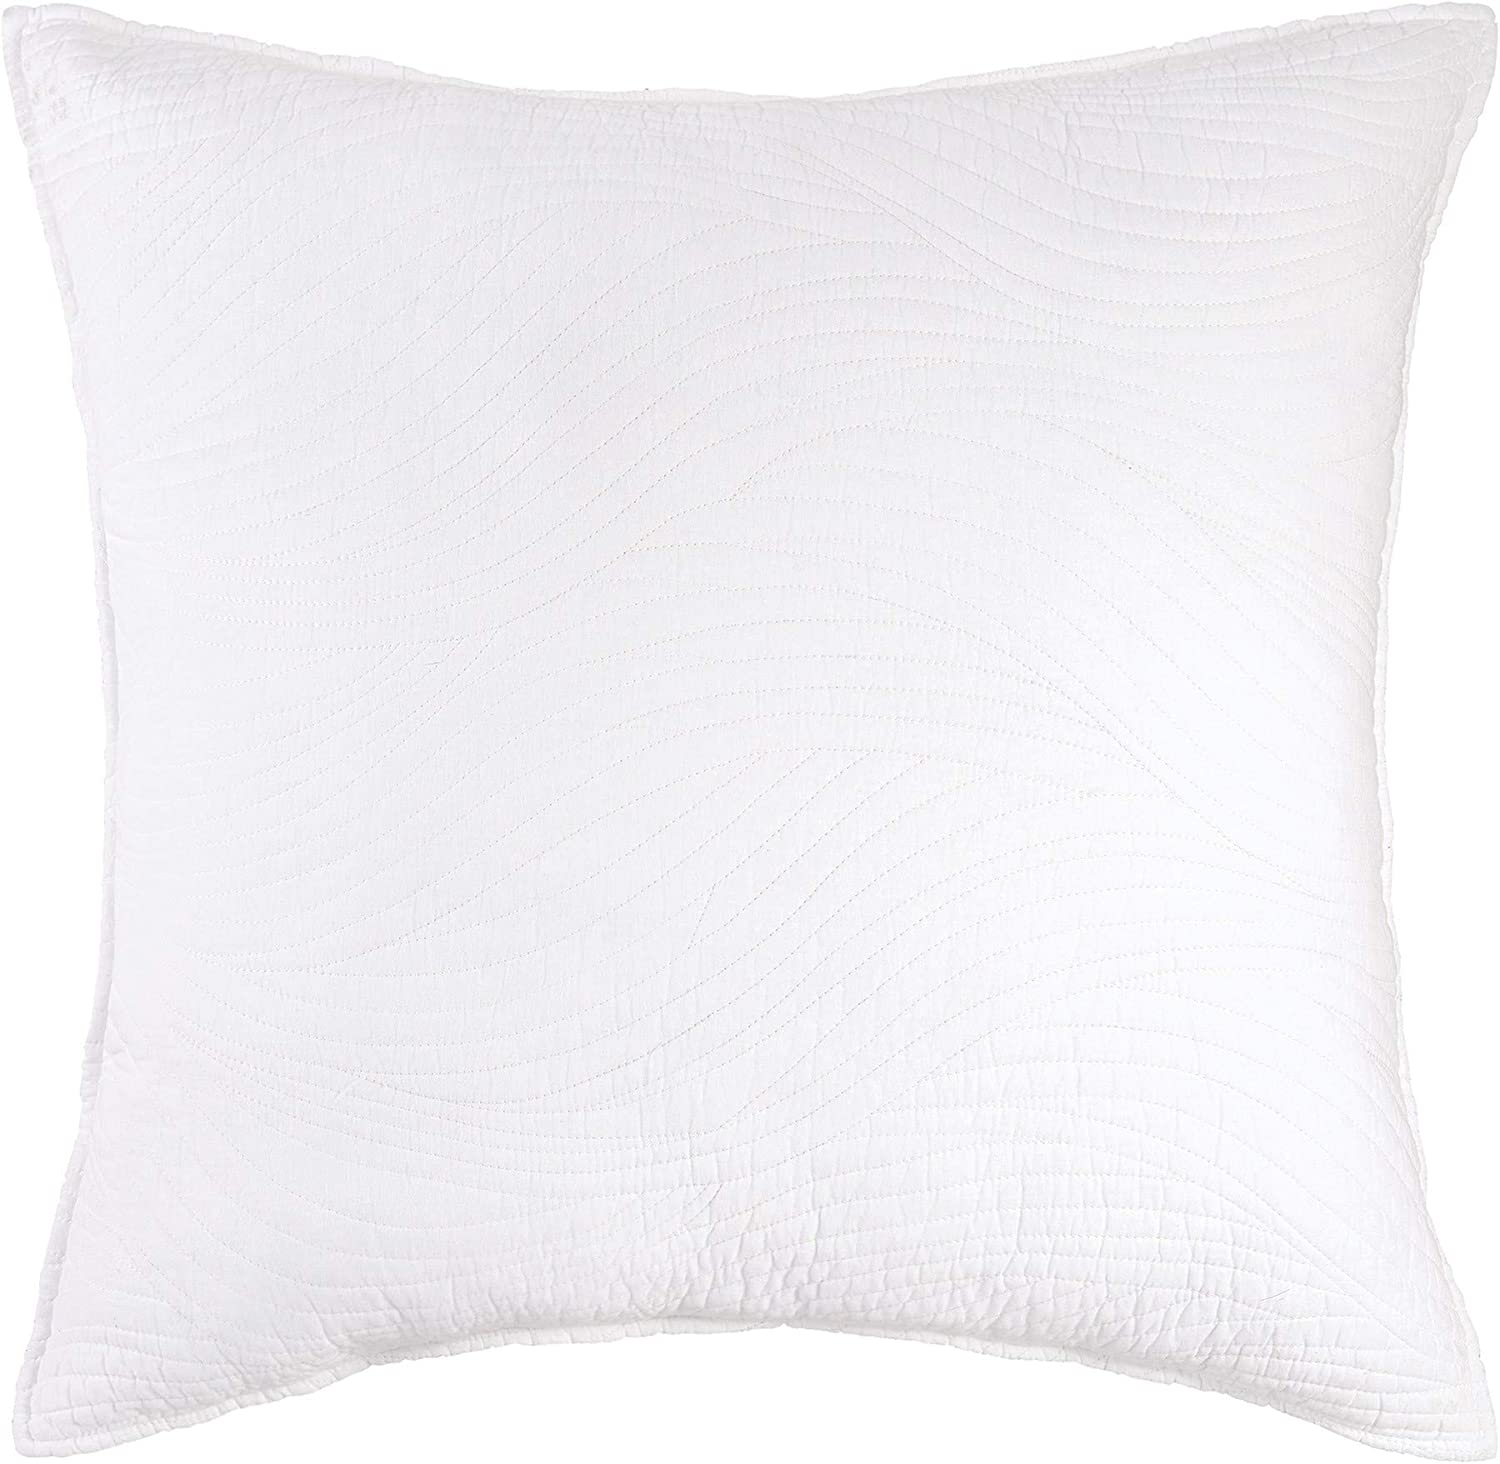 quality assurance CF Home Tranquil Now free shipping Waves White Solid Cotton Euro Sham All-Season